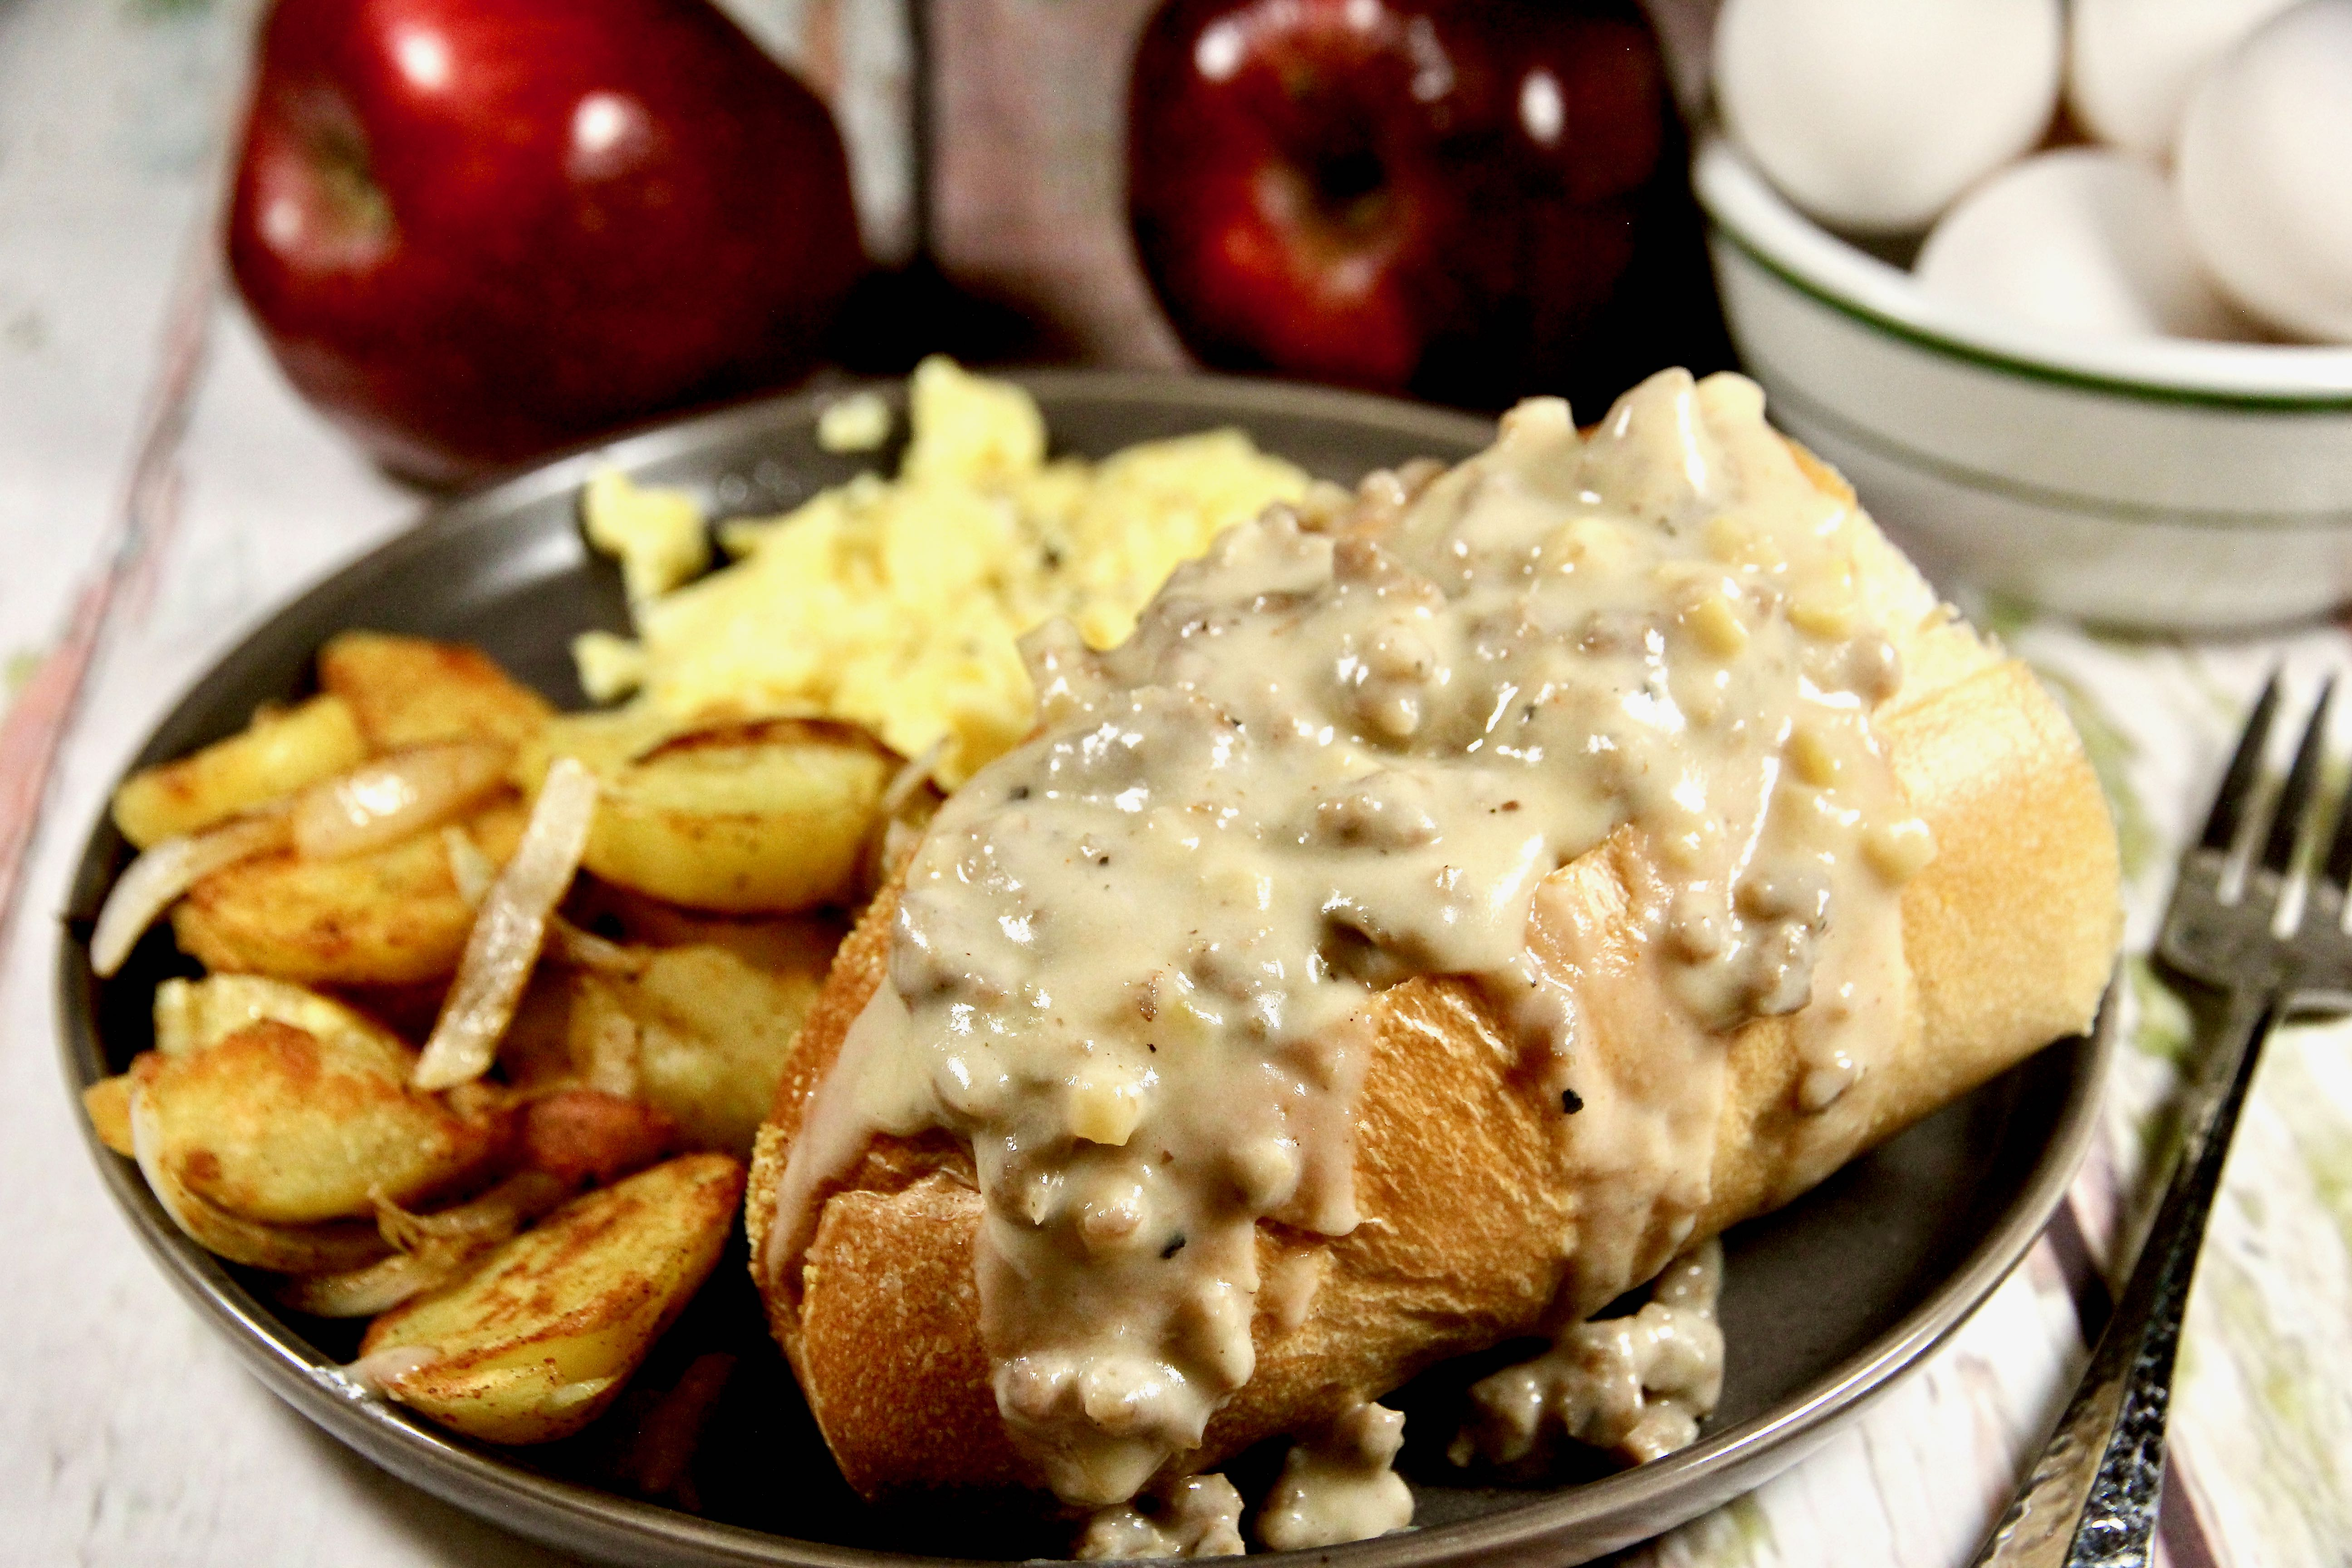 Apple-Sausage Gravy Boats lutzflcat